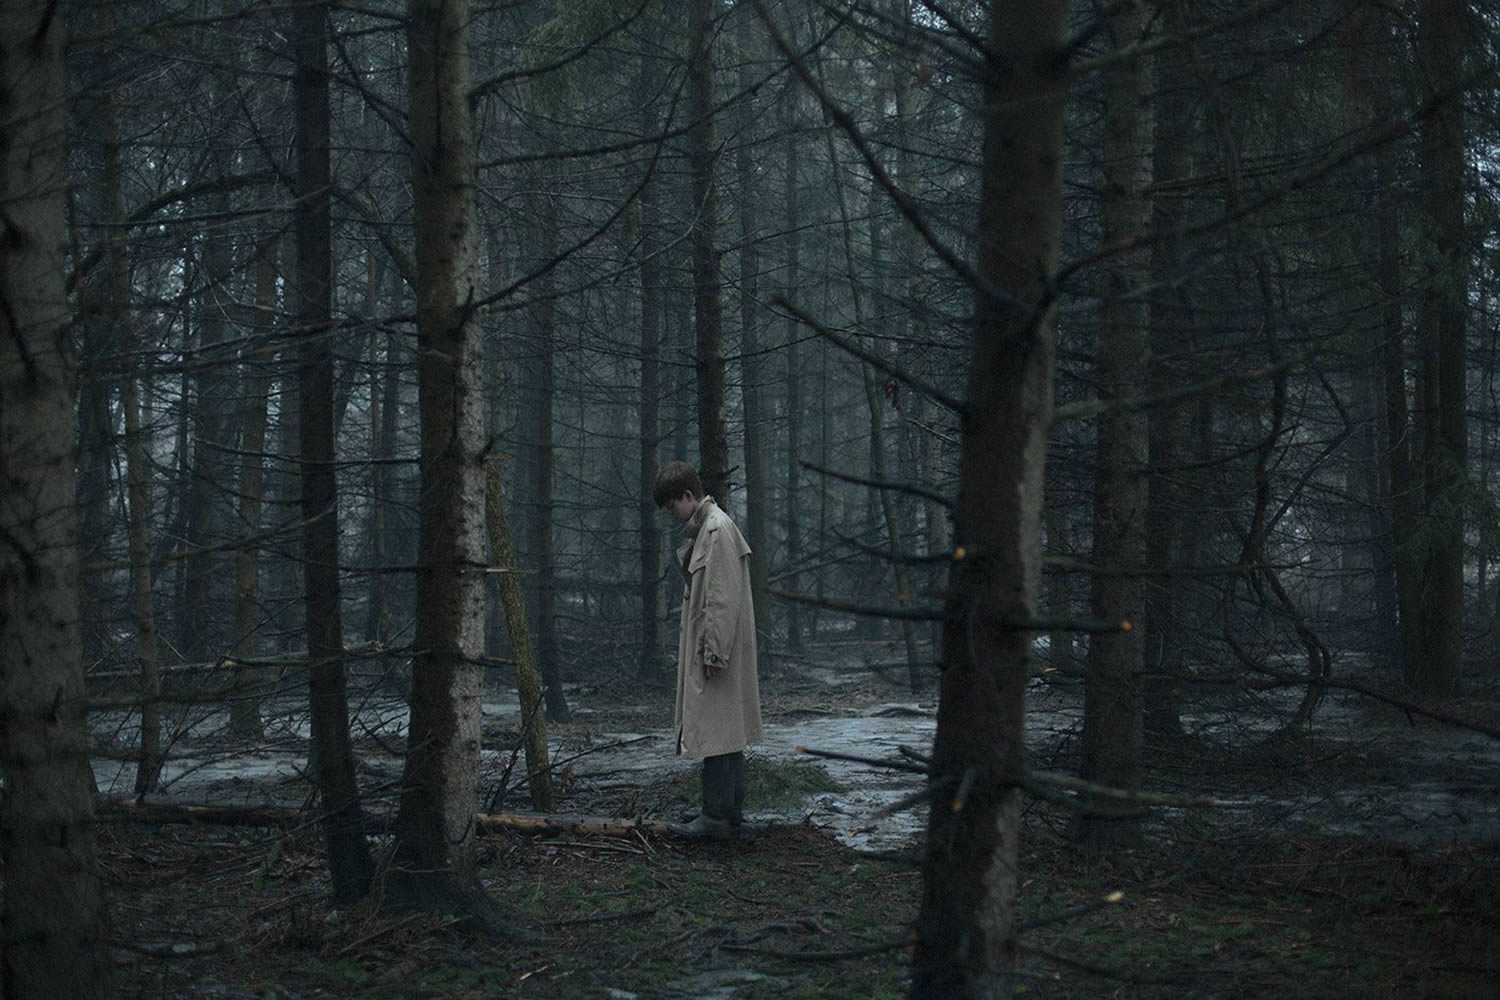 in forest, picture by alex currie